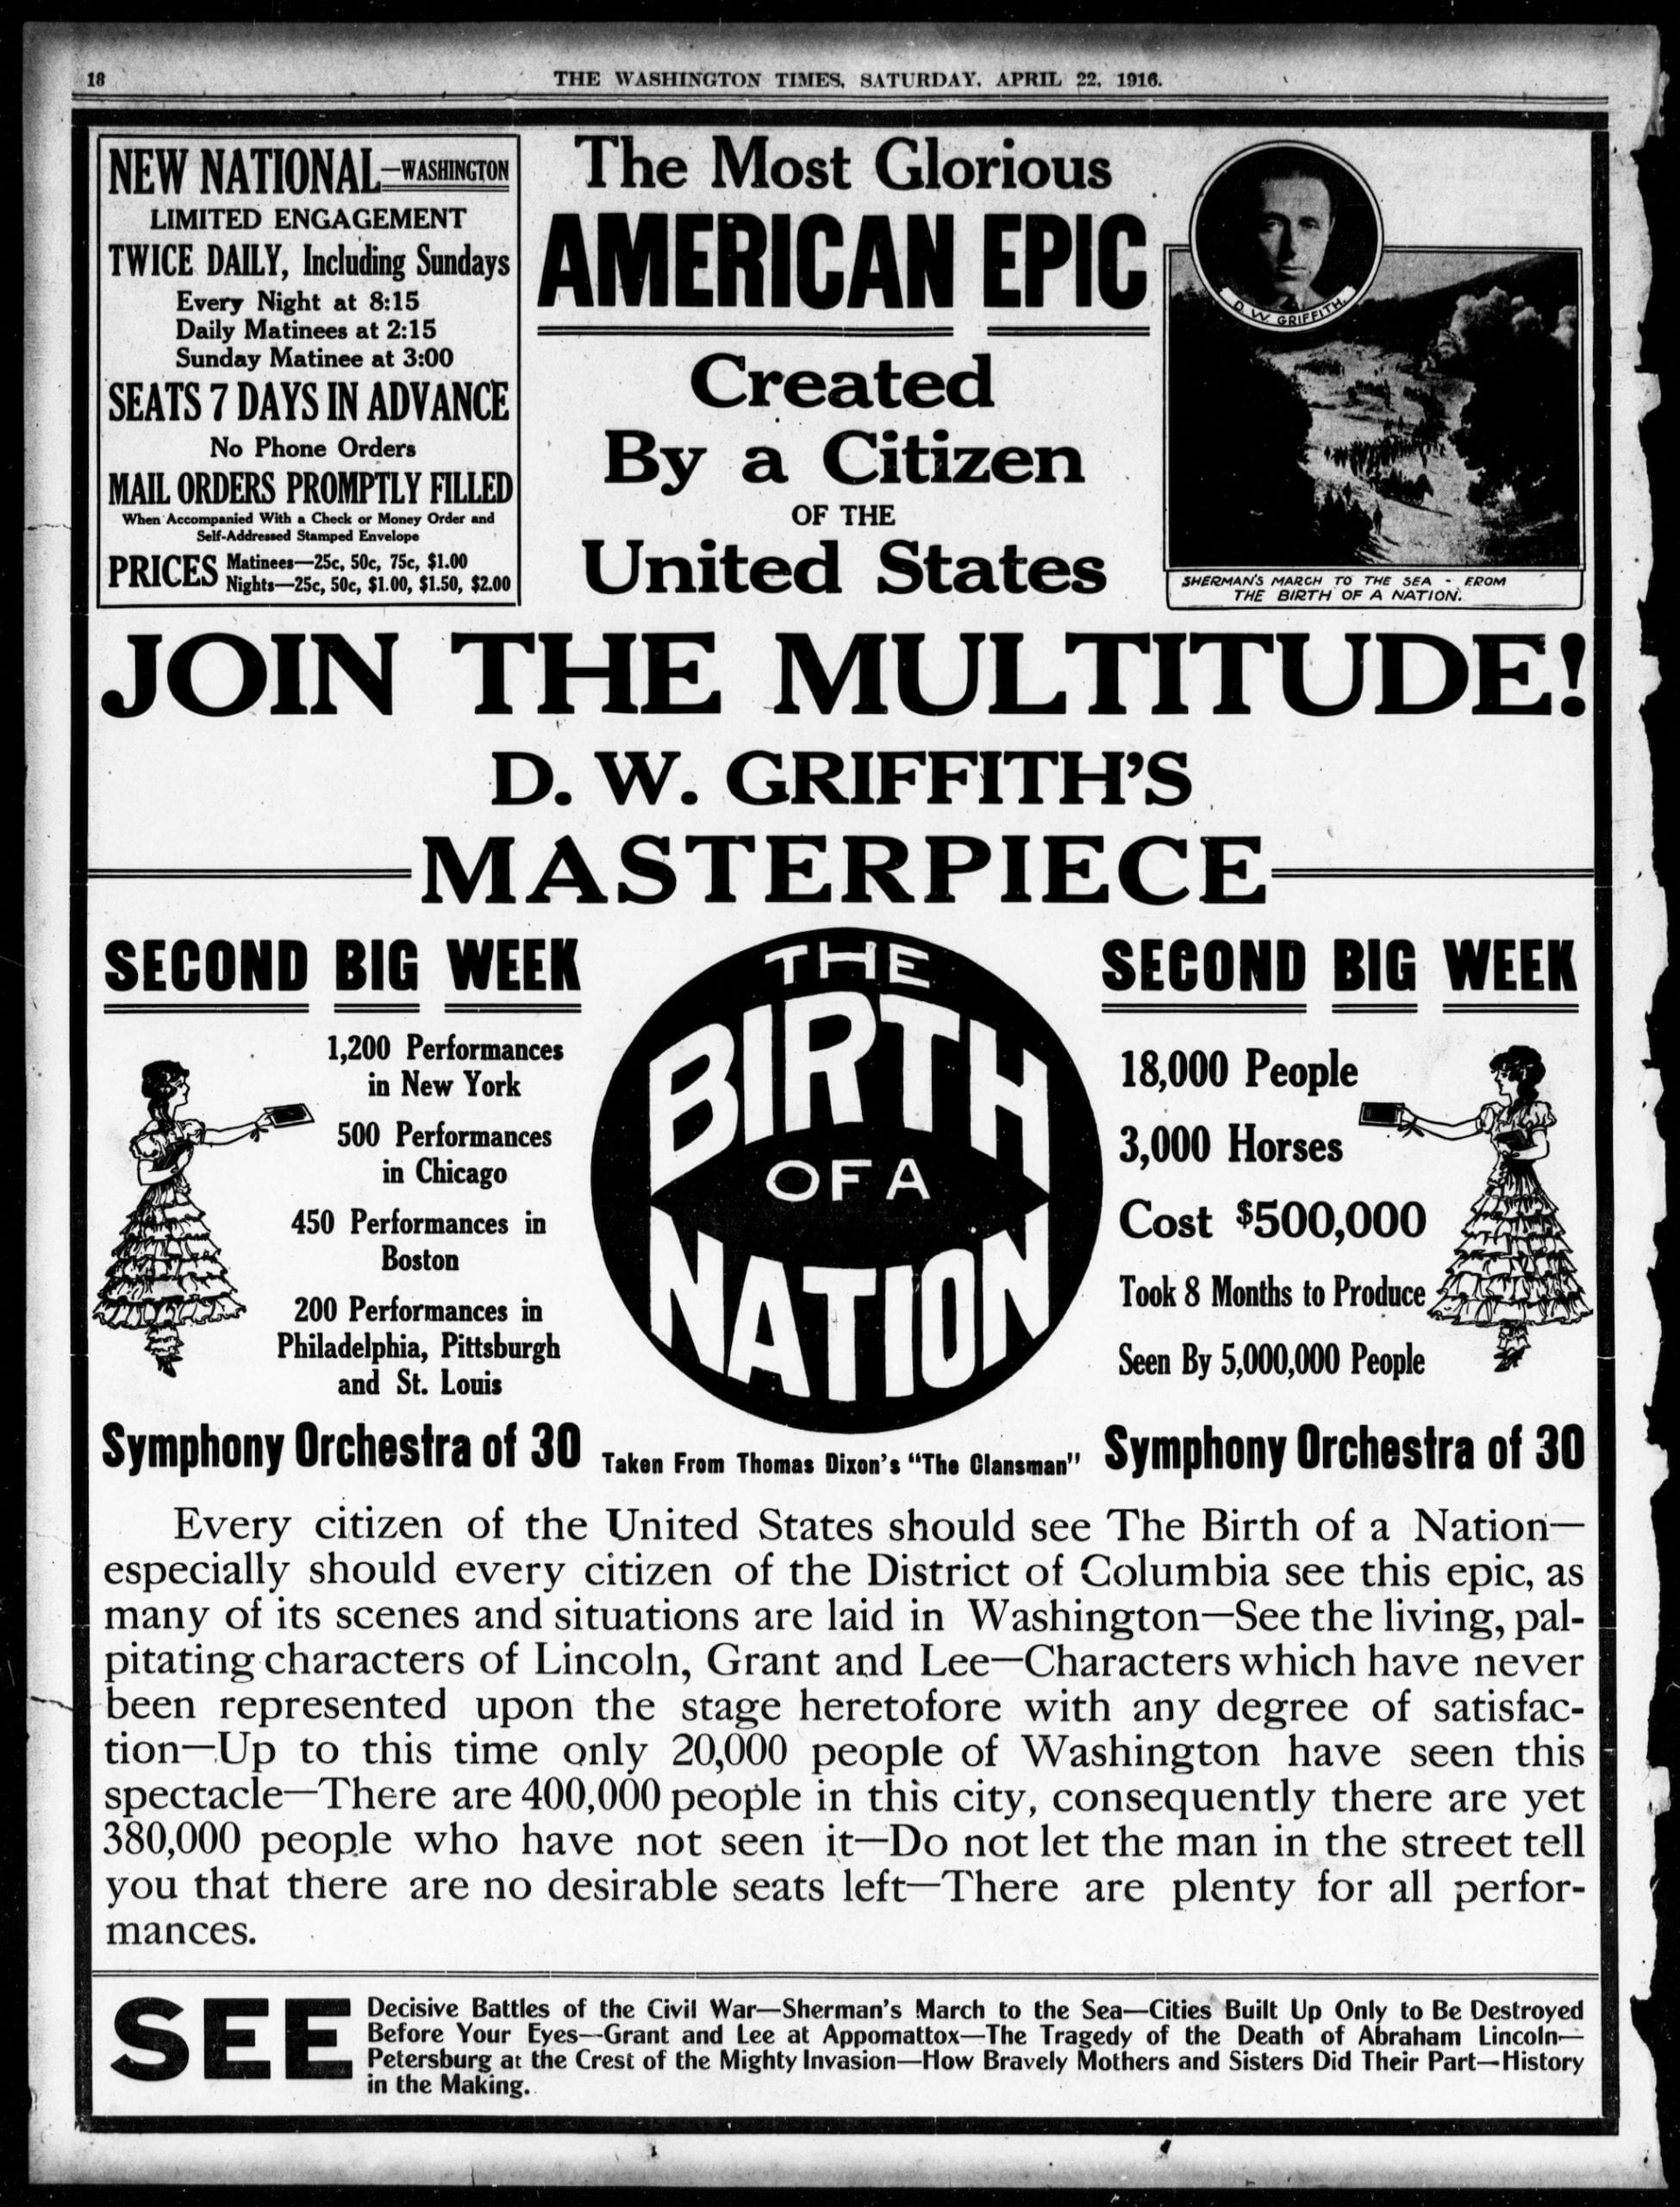 advertisement for The Birth of a Nation